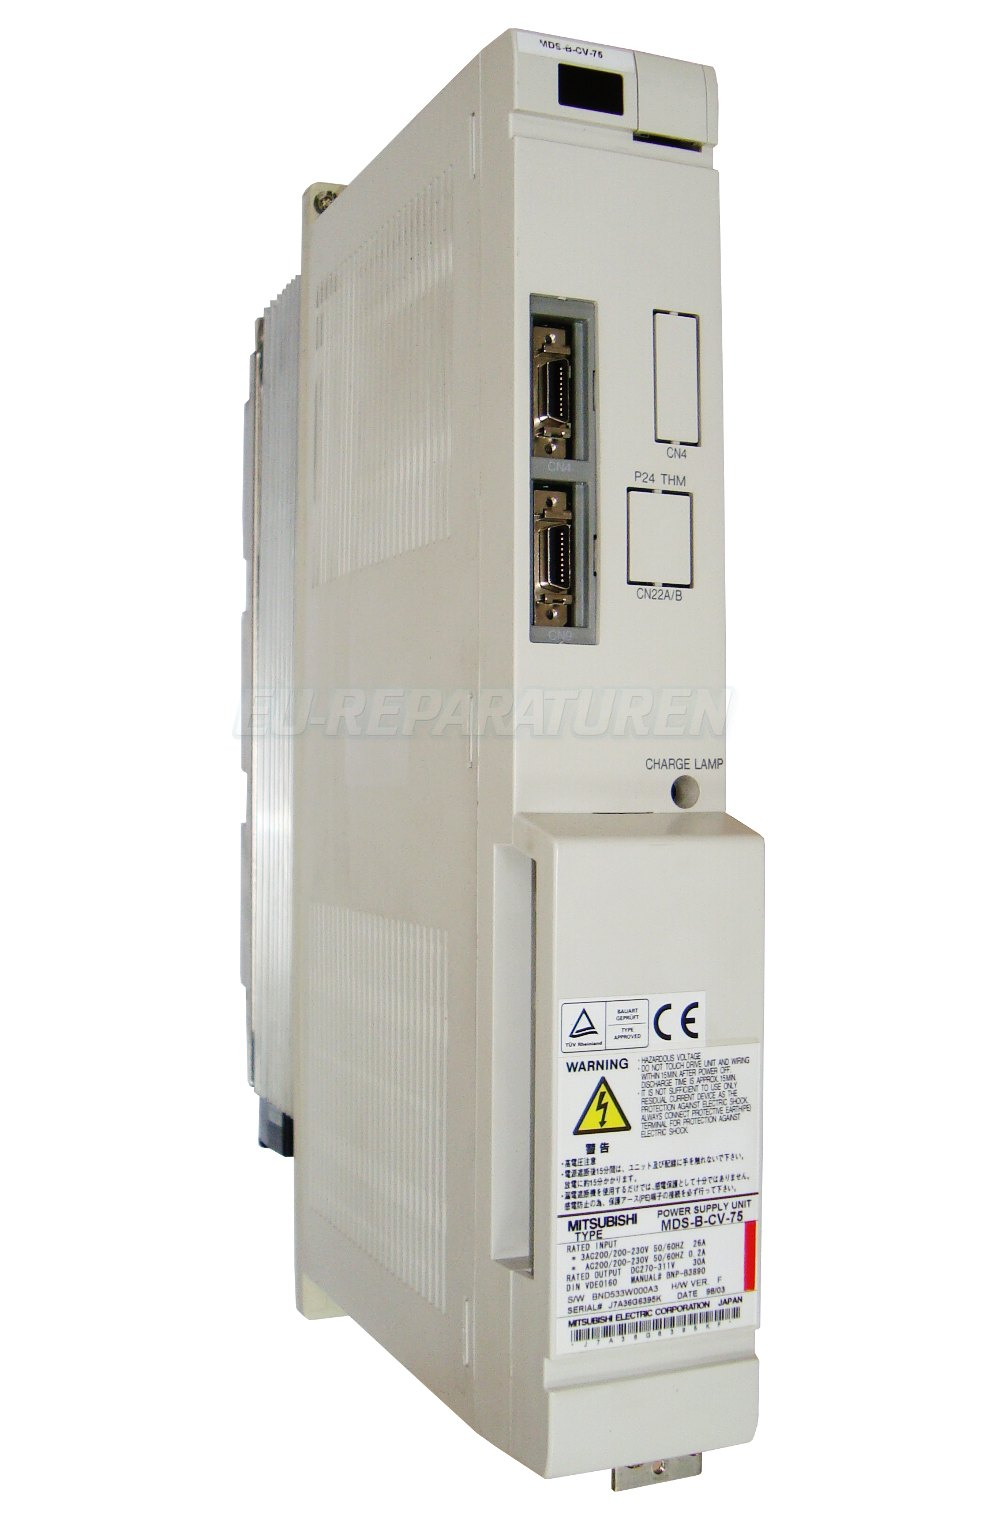 REPARATUR MITSUBISHI MDS-B-CV-75 POWER SUPPLY